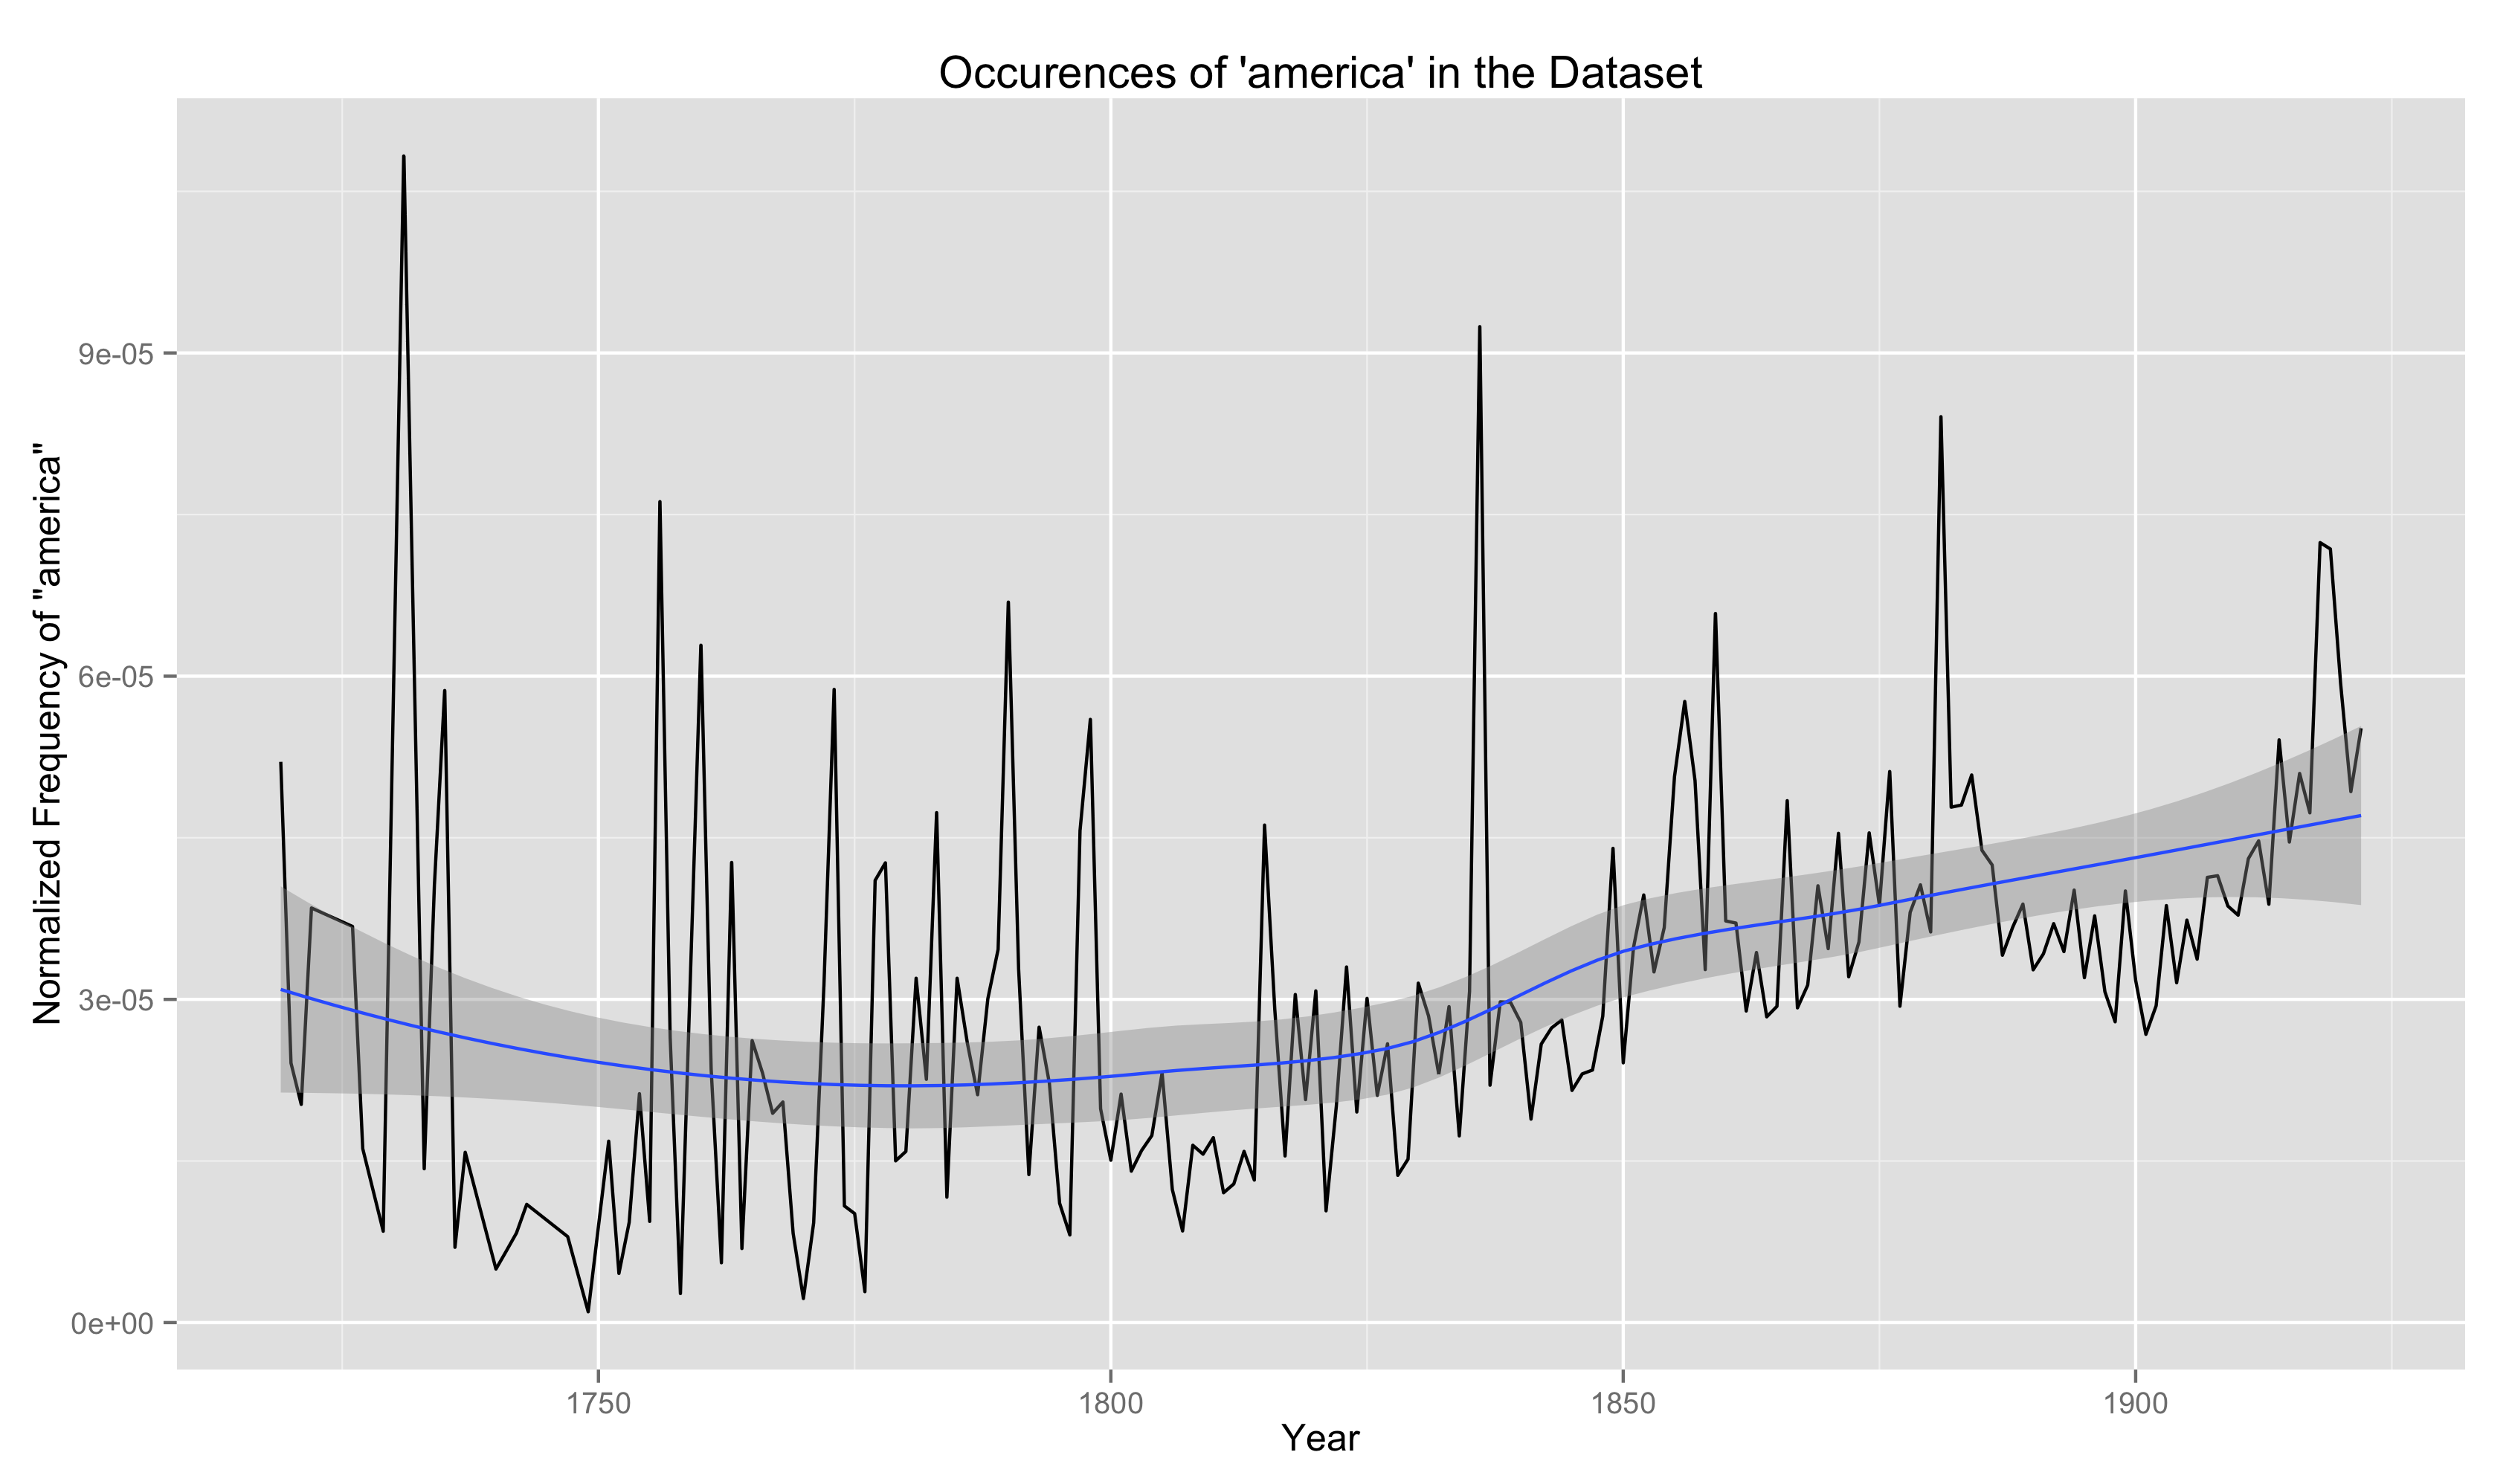 Occurences of 'america' in the Dataset